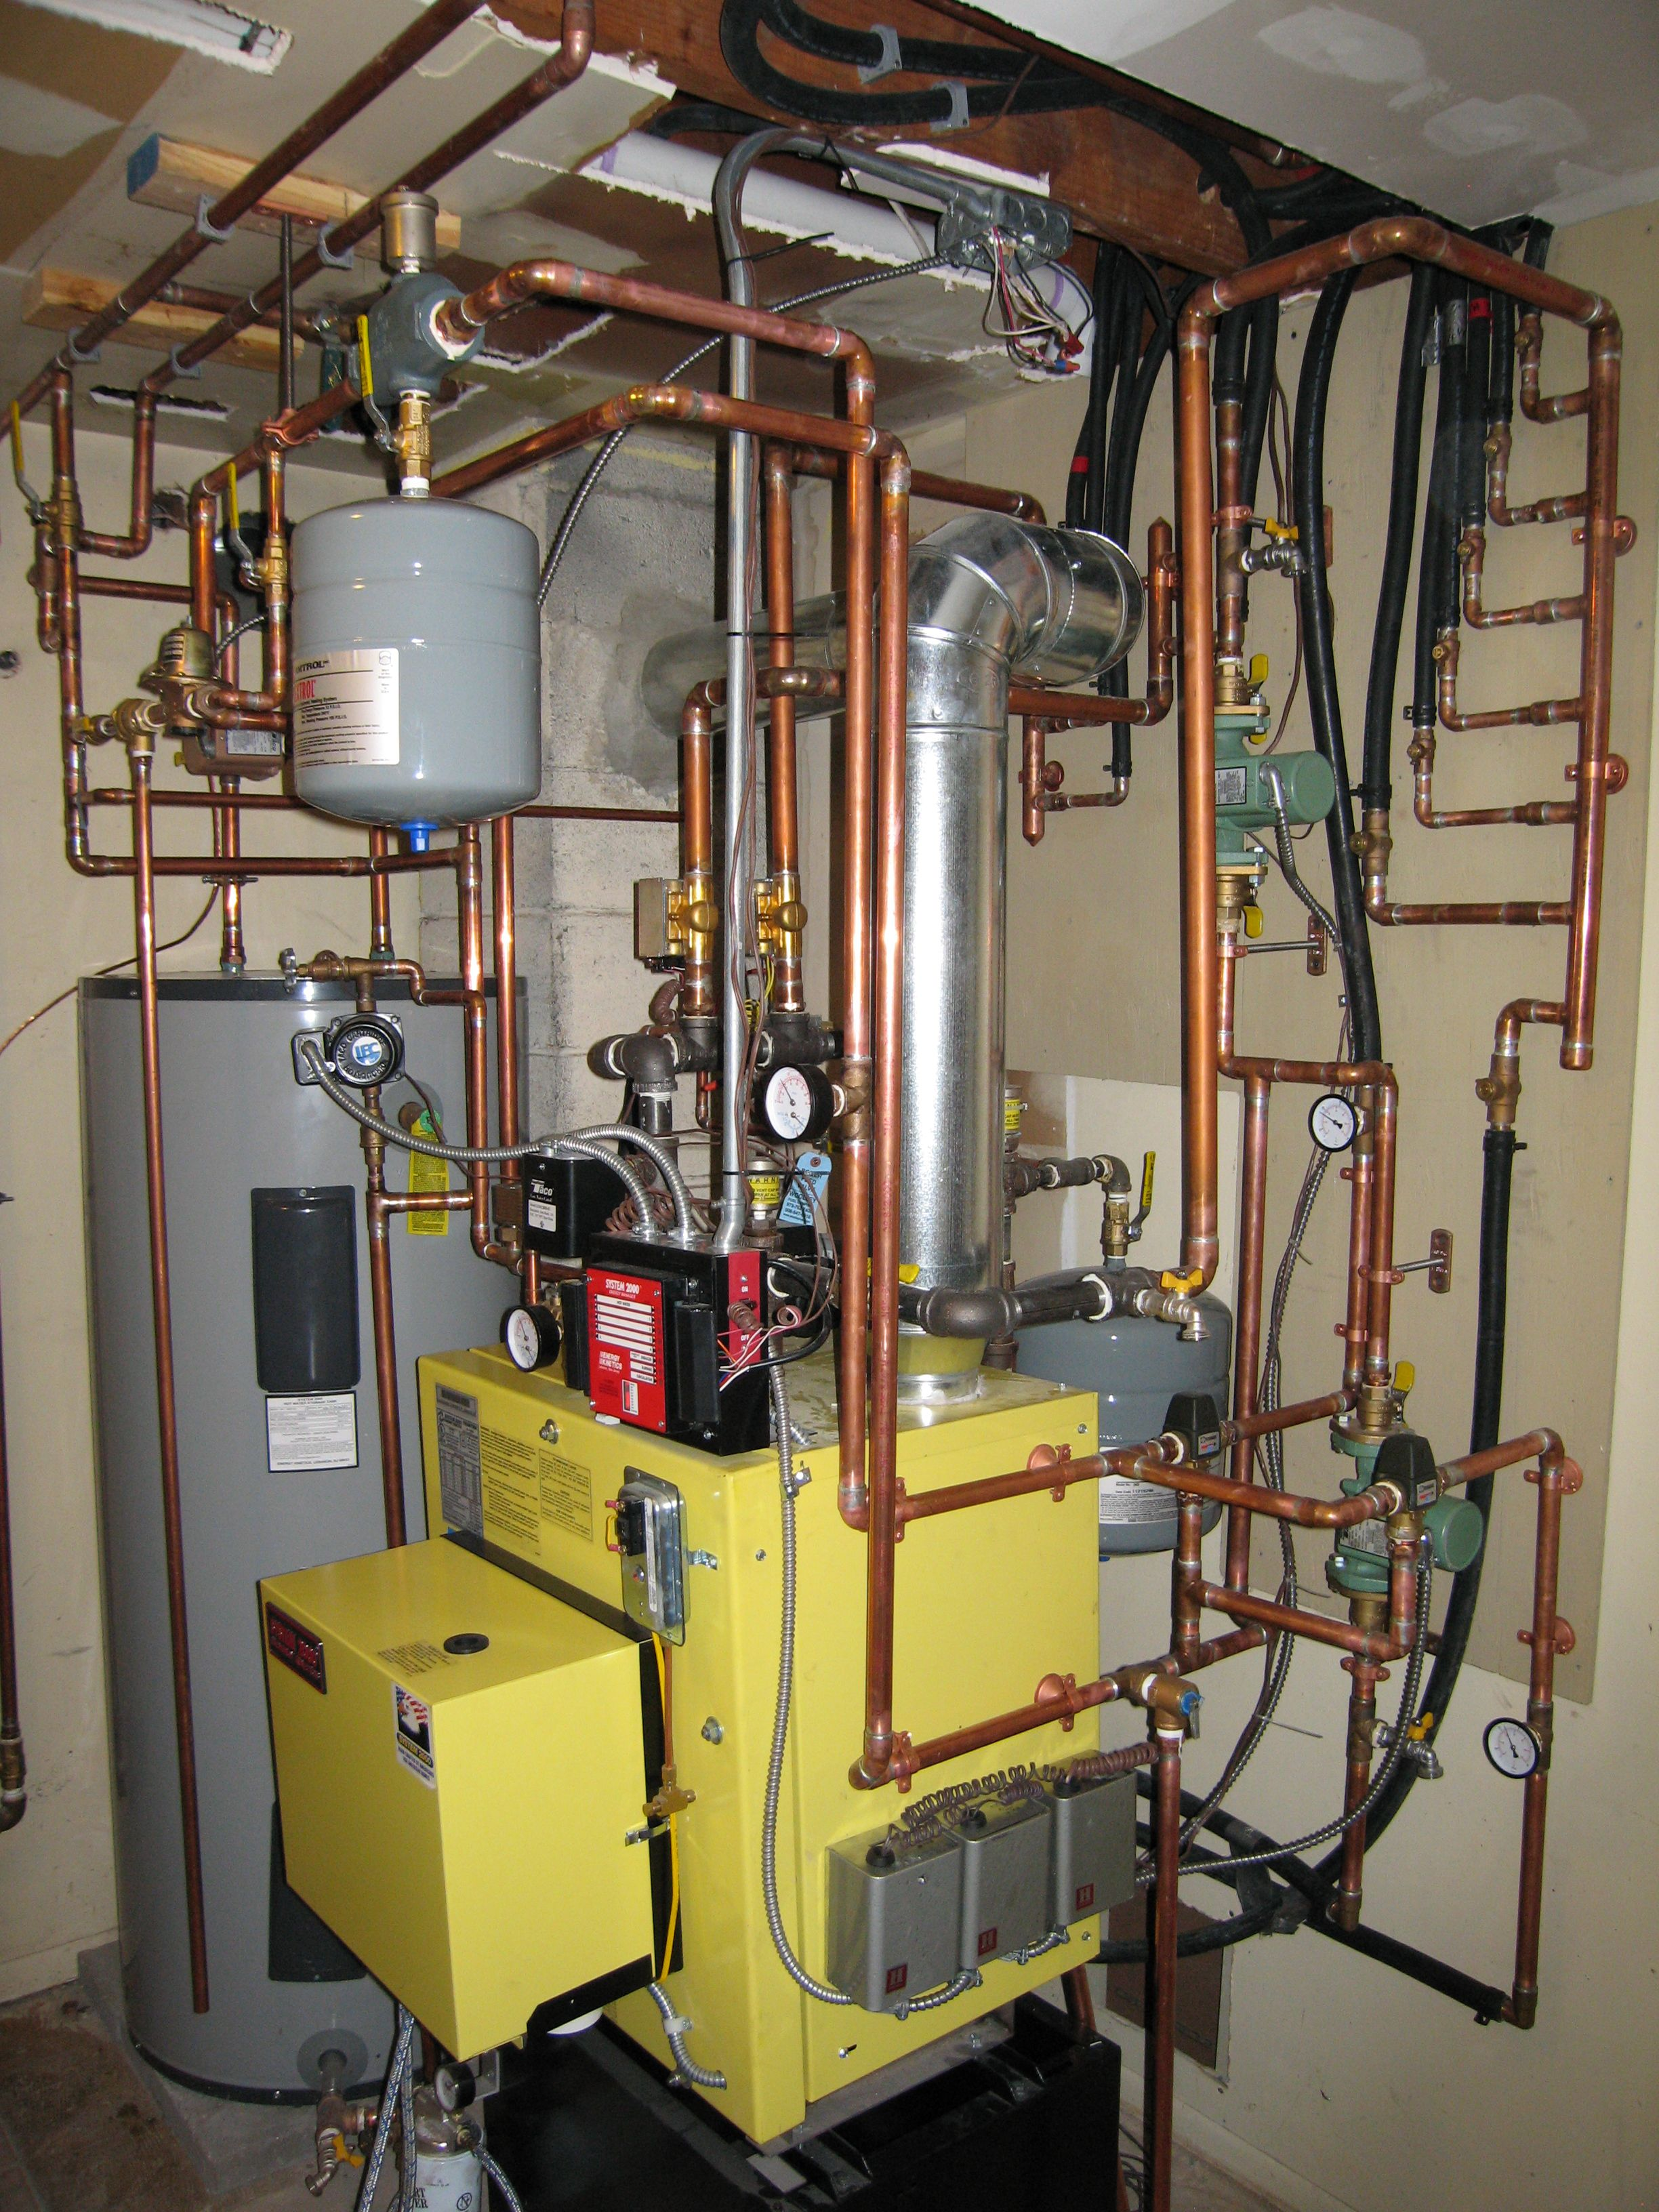 System2000 Energy Kinetics Fuel Oil Boiler install with radiant heat